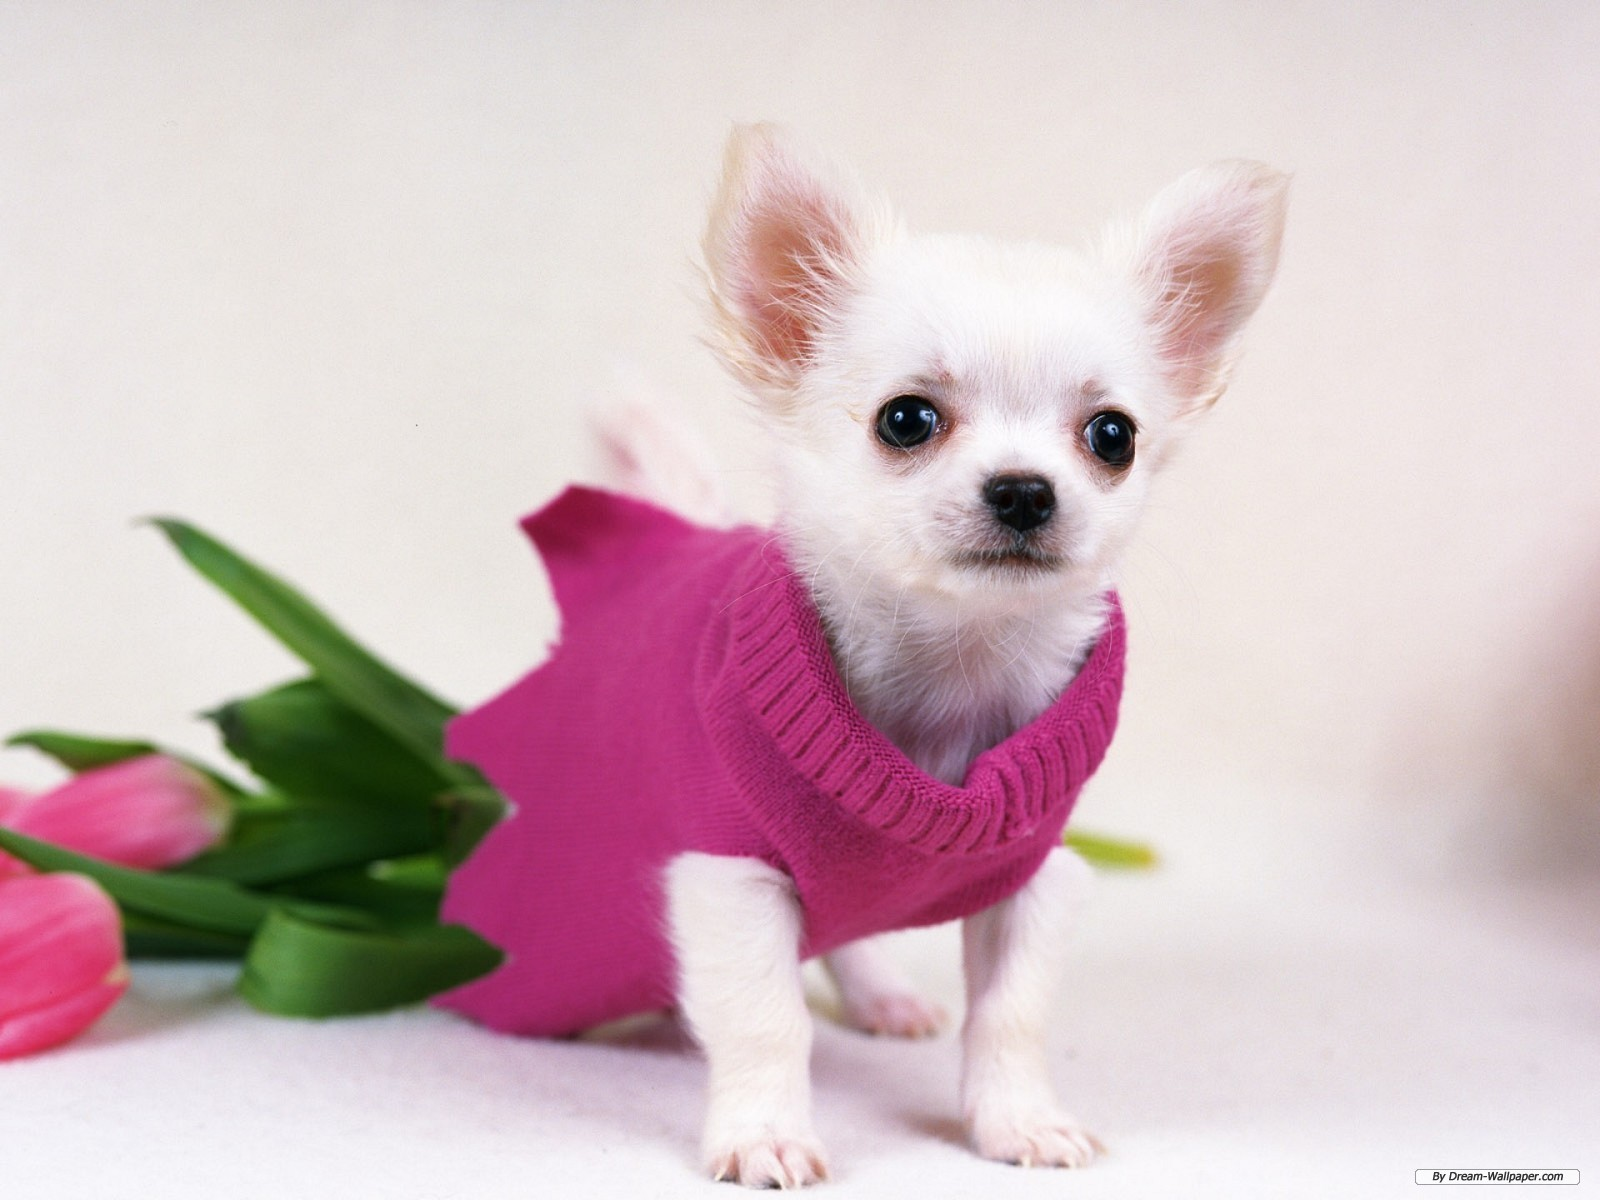 Gorgeous Chihuahua - Chihuahuas Wallpaper (16750842) - Fanpop fanclubs